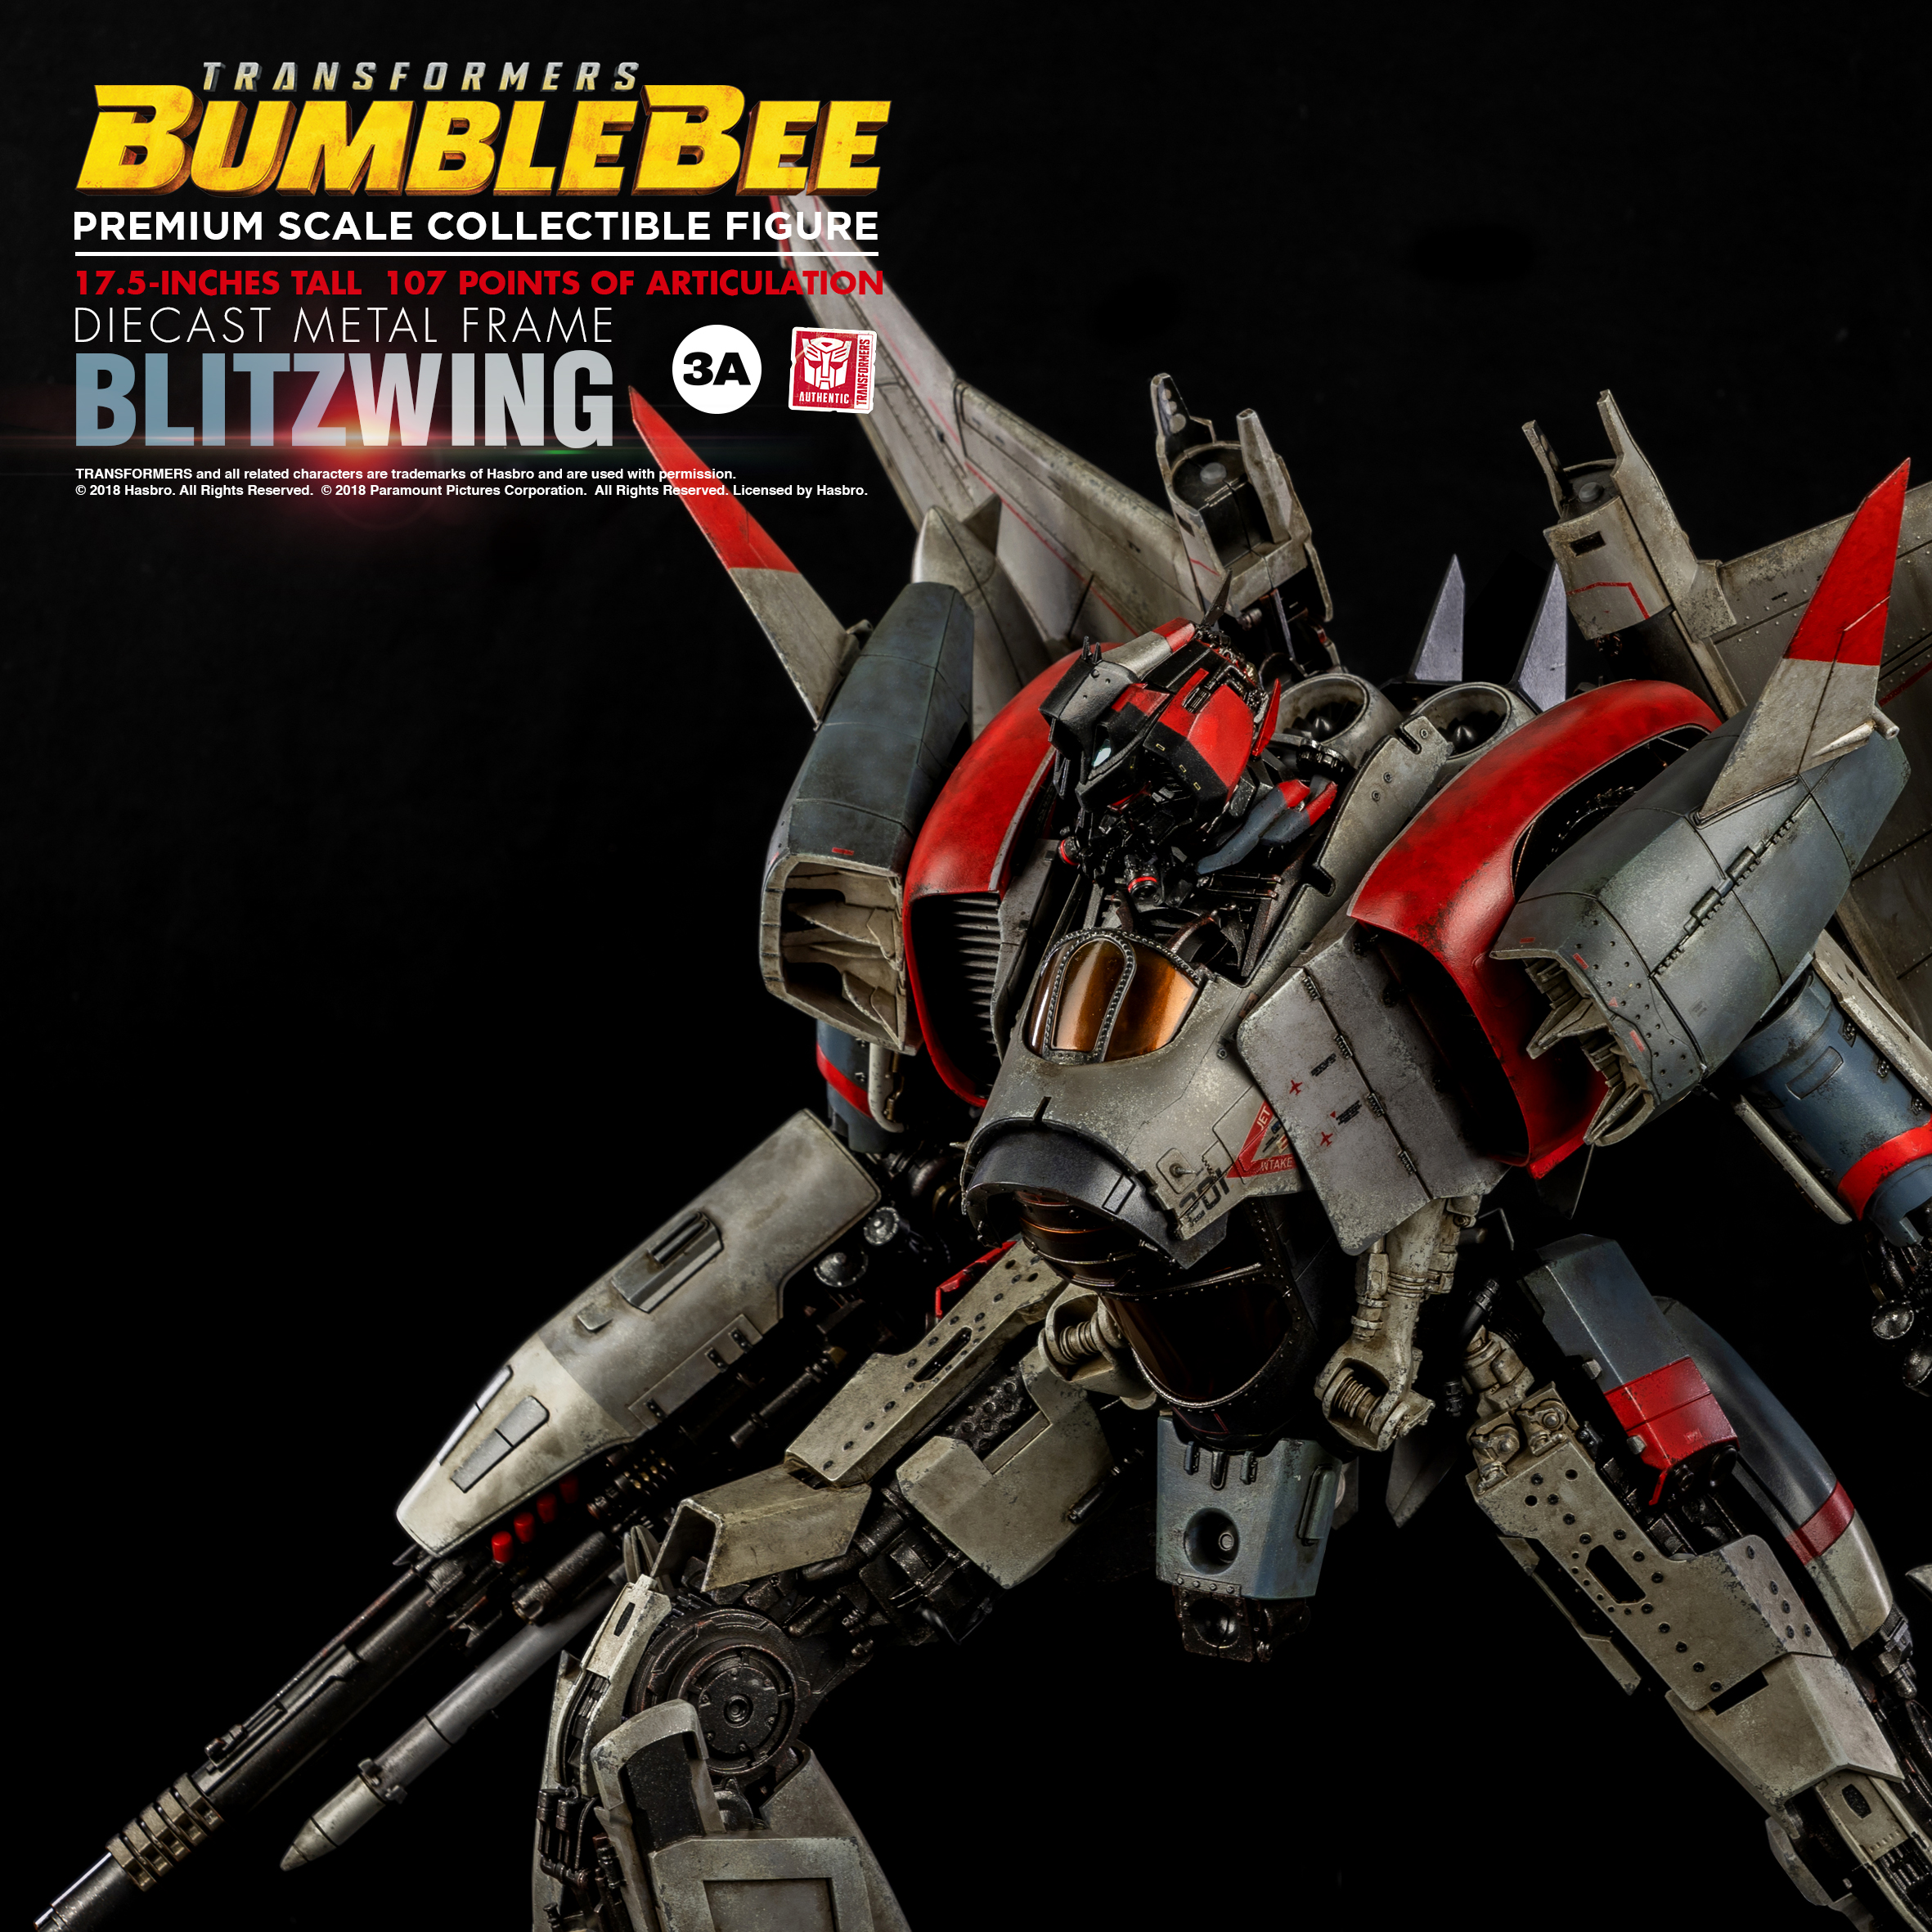 Blitzwing_PM_1047.jpg